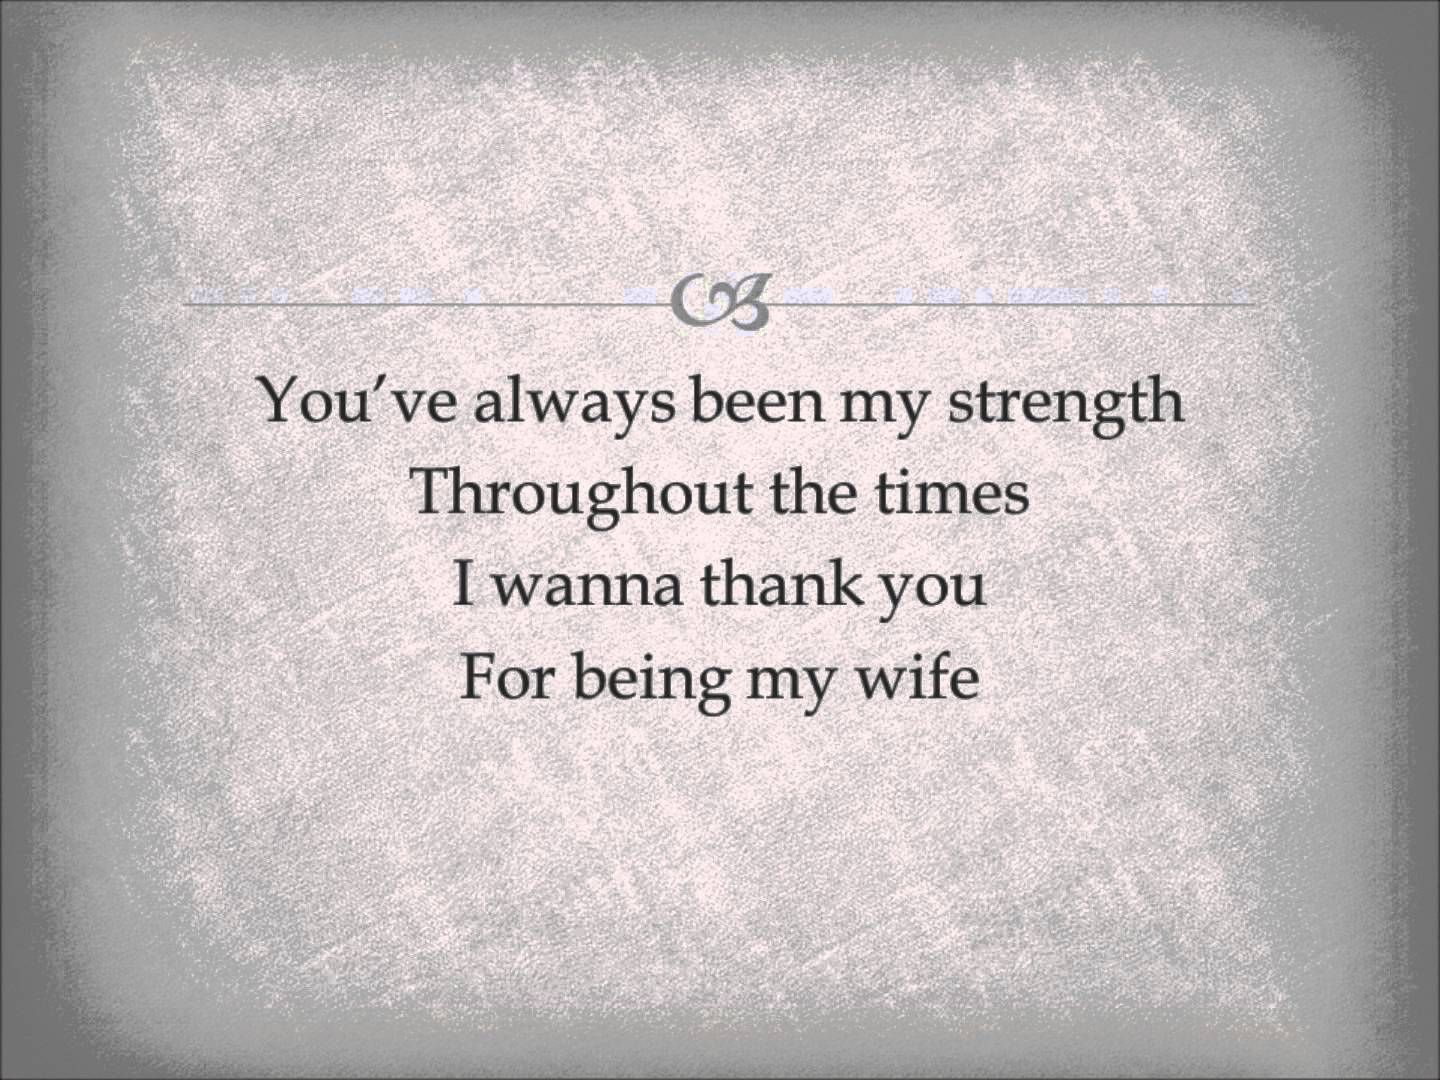 Al Martino Thank You For Being My Wife With Lyrics My Wife